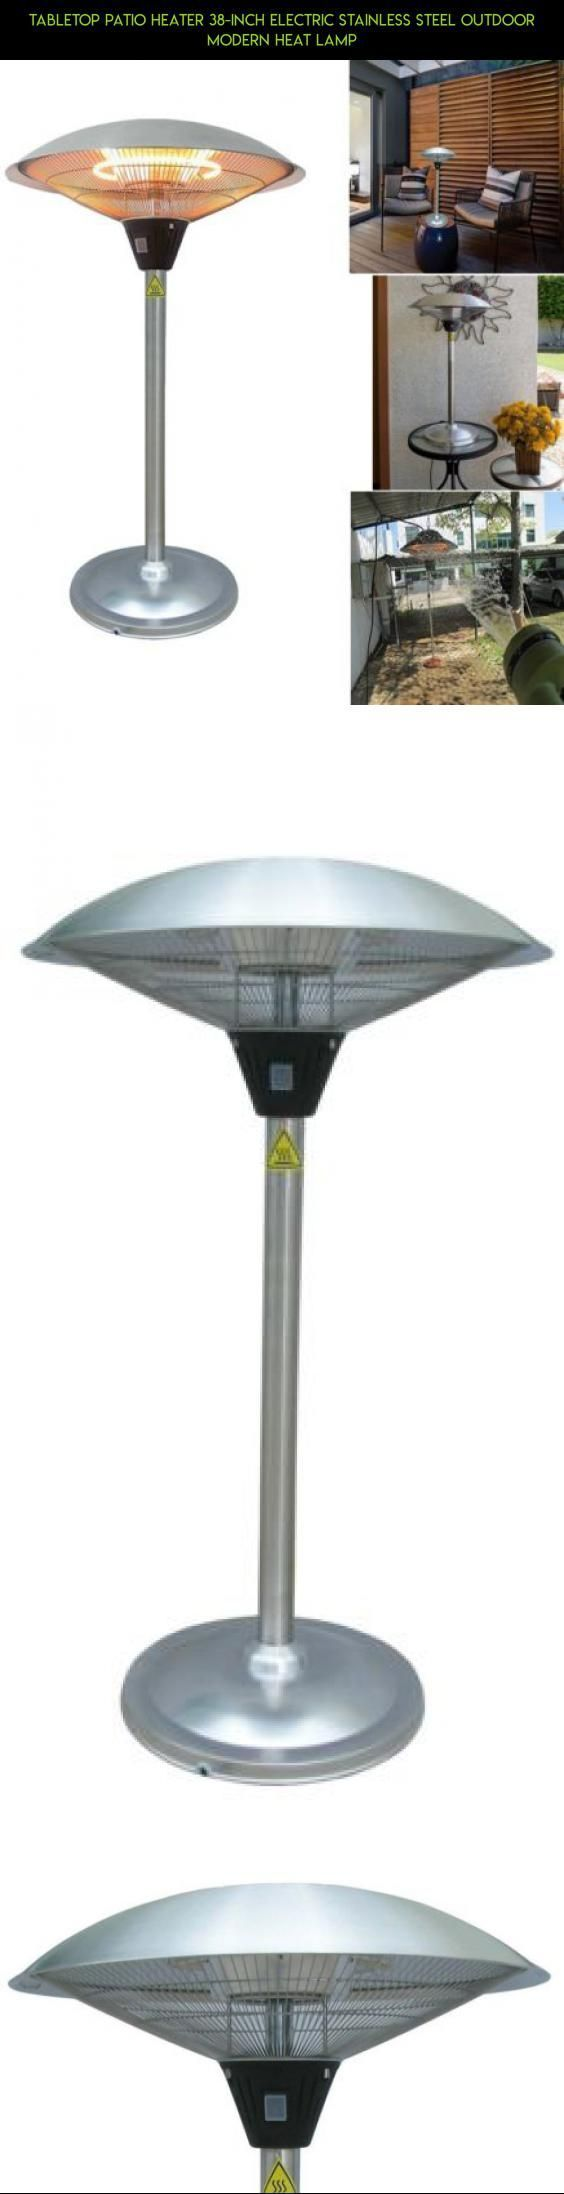 Tabletop Patio Heater 38-Inch Electric Stainless Steel Outdoor Modern Heat Lamp #fpv #tech #products #gadgets #lamp #shopping #plans #kit #technology #racing #heating #camera #drone #parts